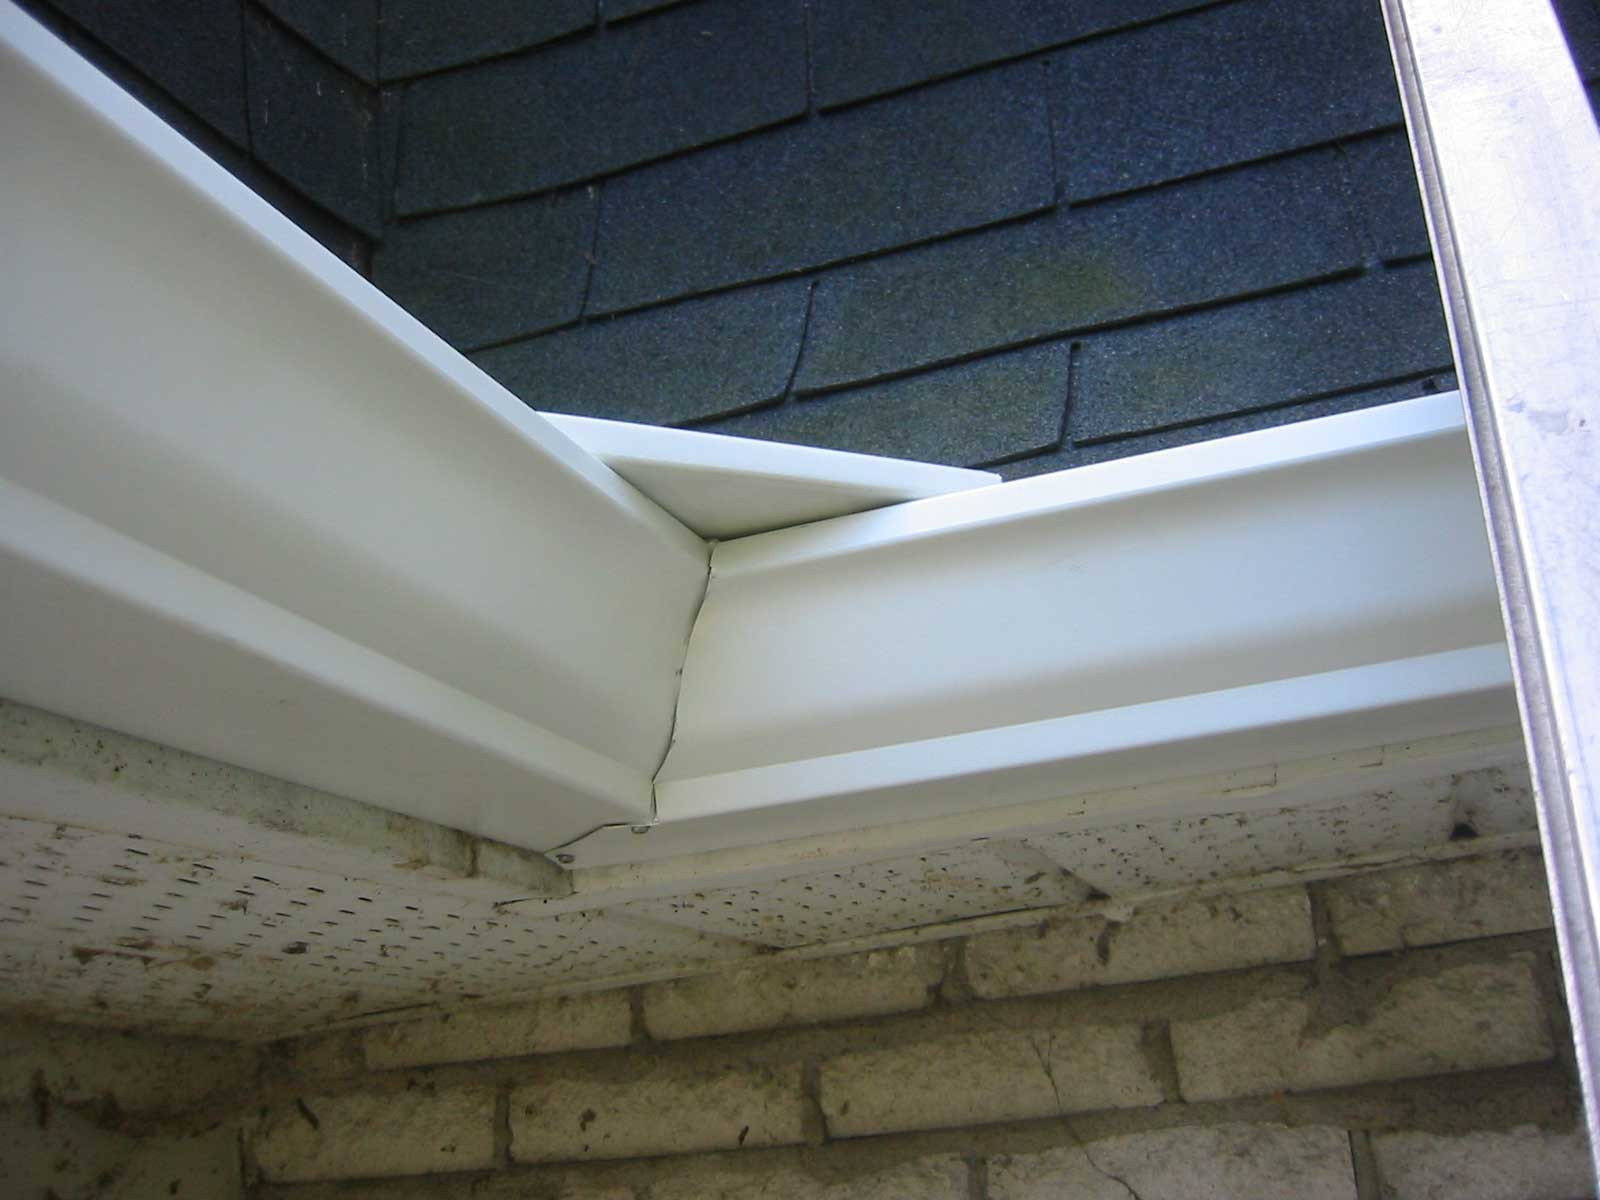 Interior gutter with protection